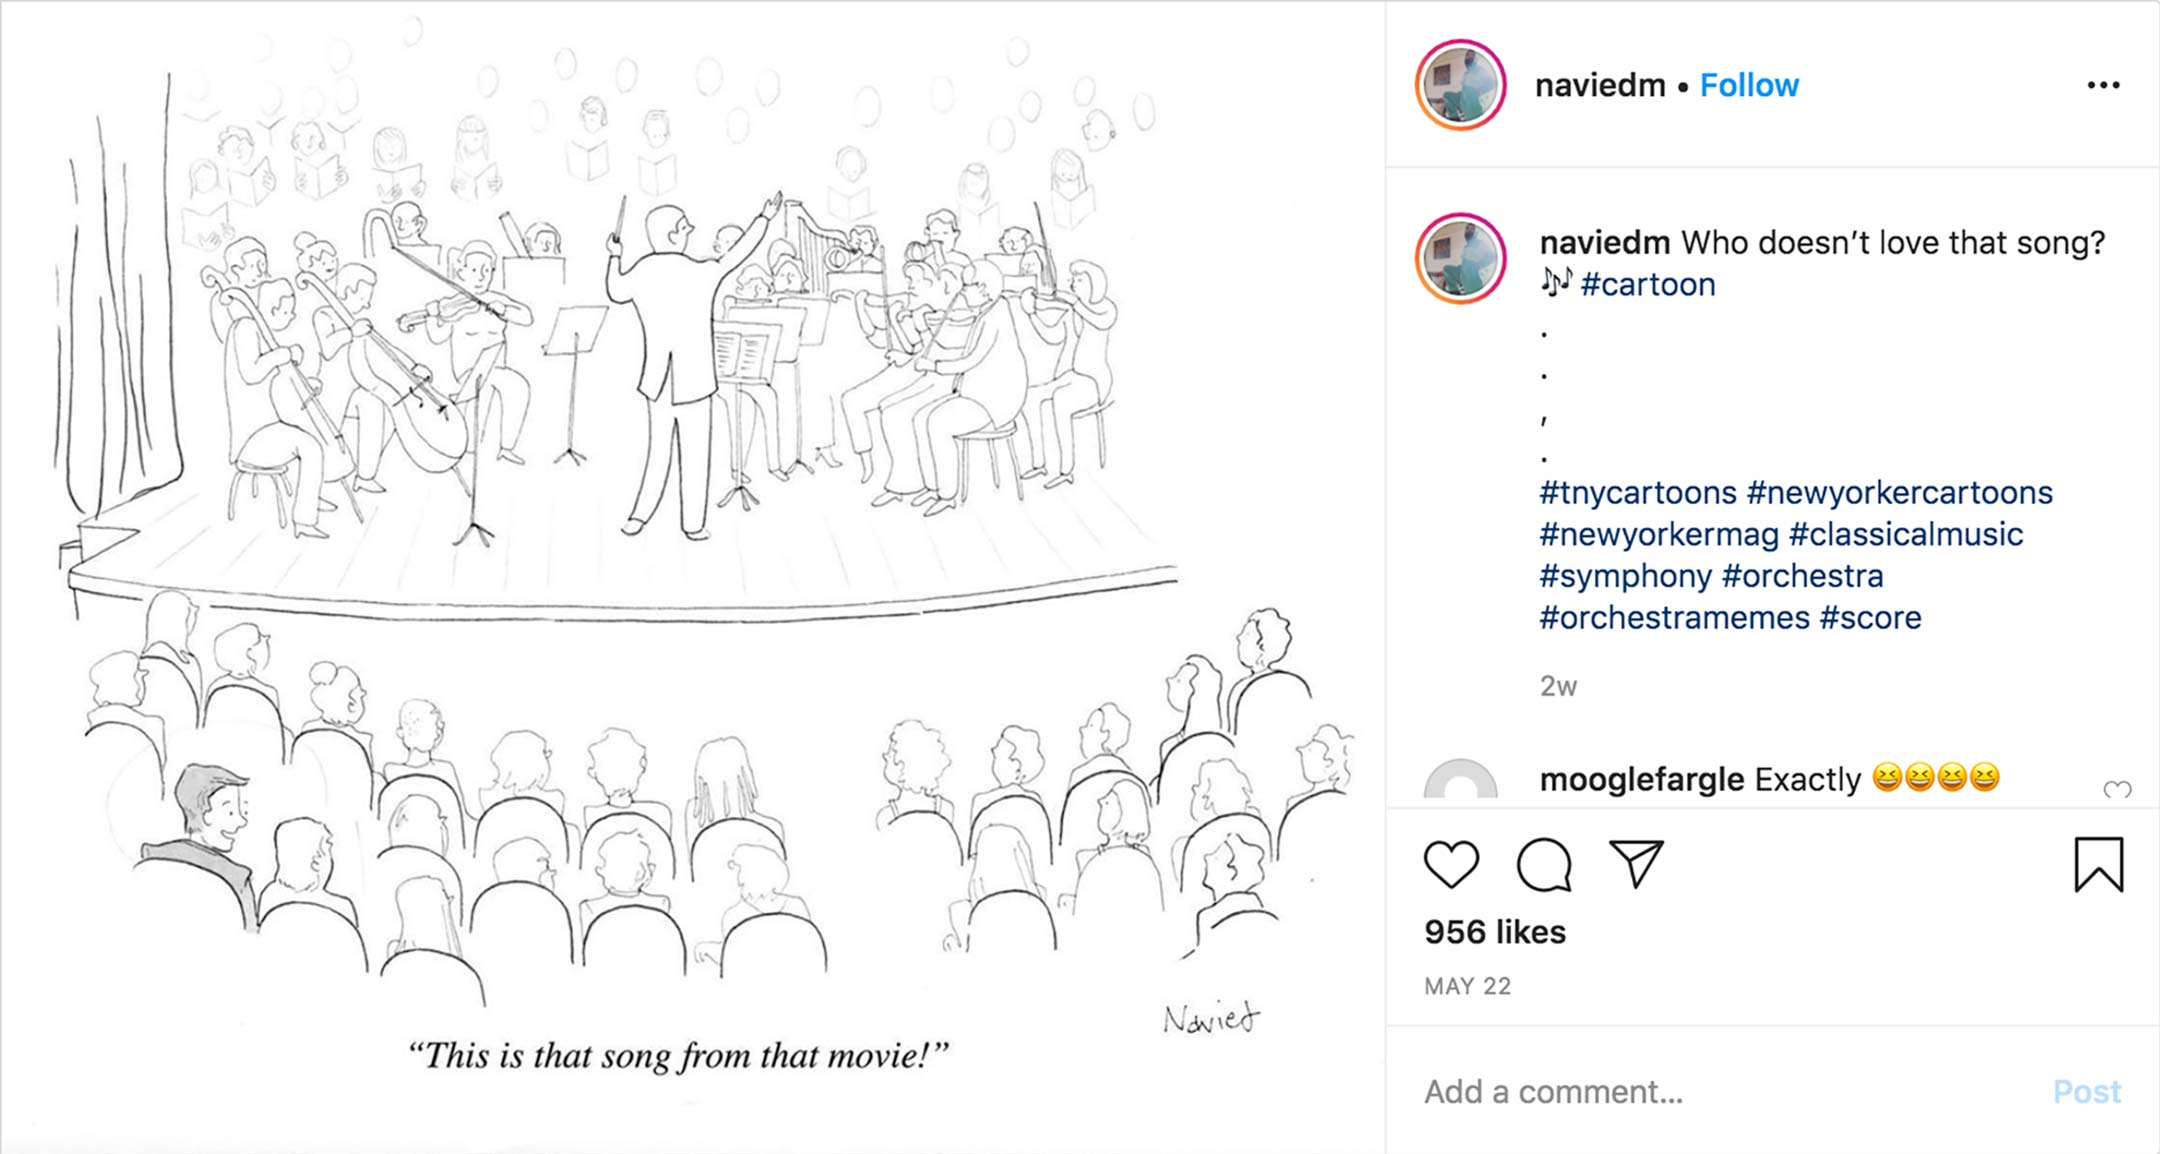 screenshot of an instragram page showing a cartoon of a crowded orchestra audience with one man excitedly remarking that the next piece is from a movie